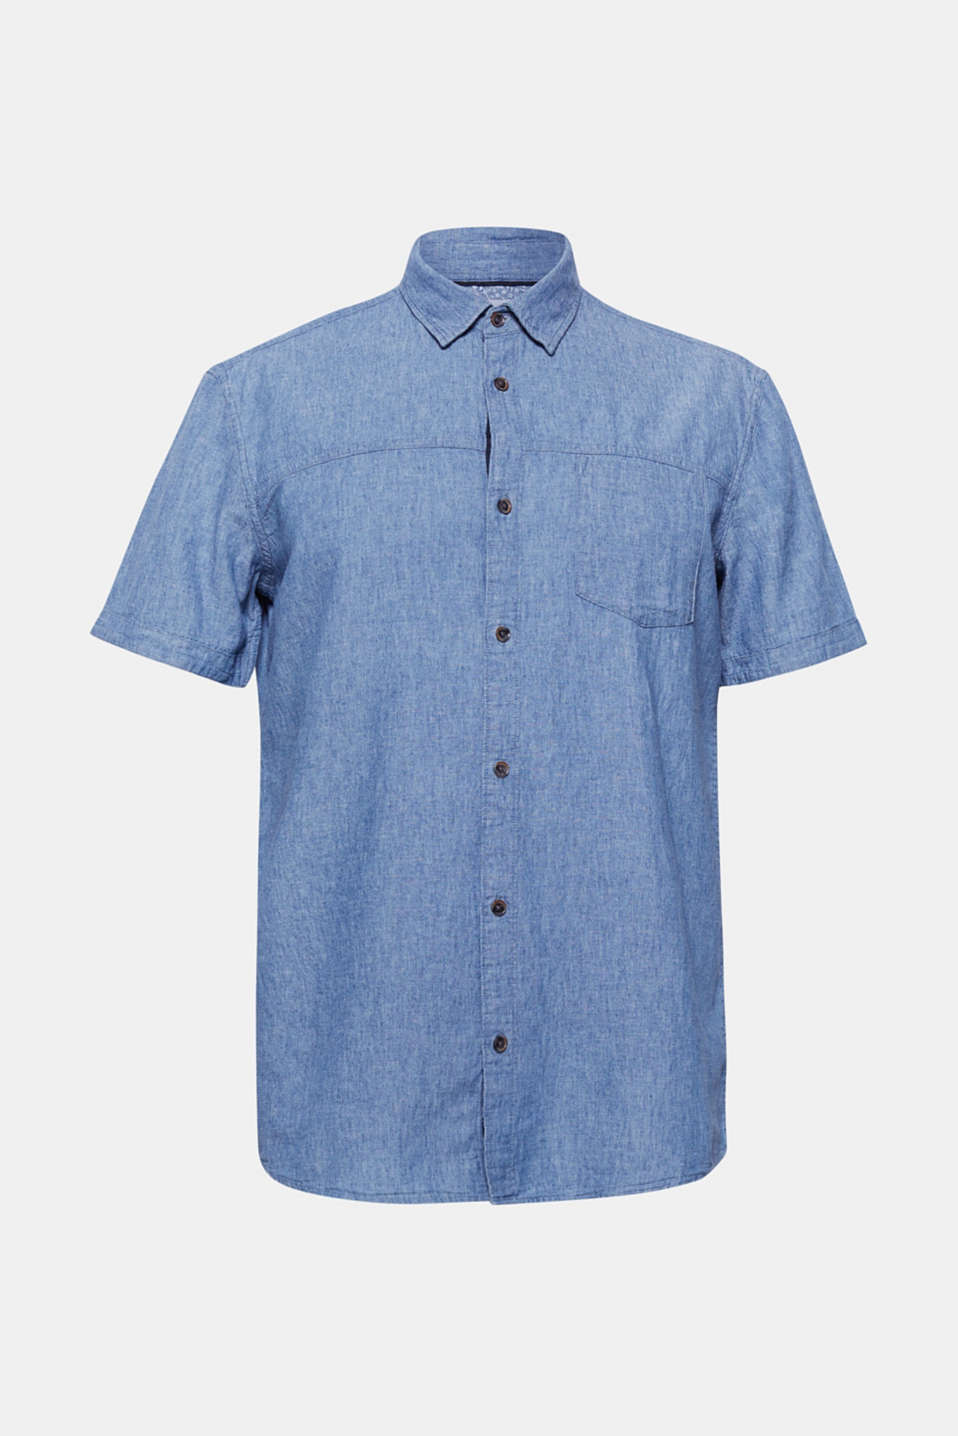 Shirts woven Regular fit, BLUE MEDIUM WASH, detail image number 7